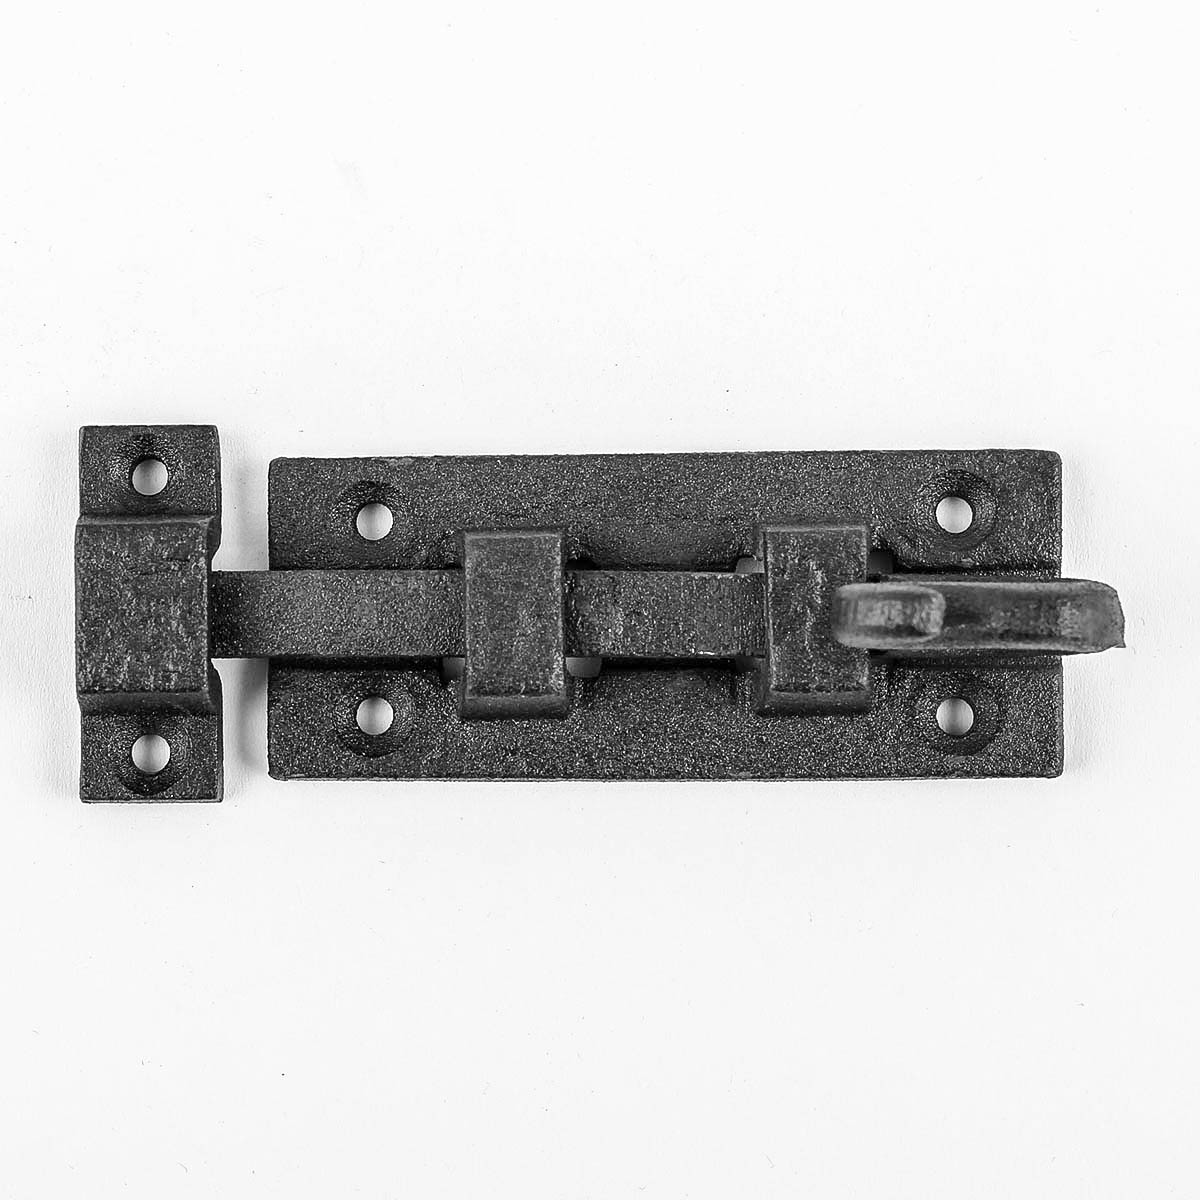 2 Slide Bolts Black Wrought Iron Curled Tail Set of 2 Door Bolt Door Bolts Slide Bolts